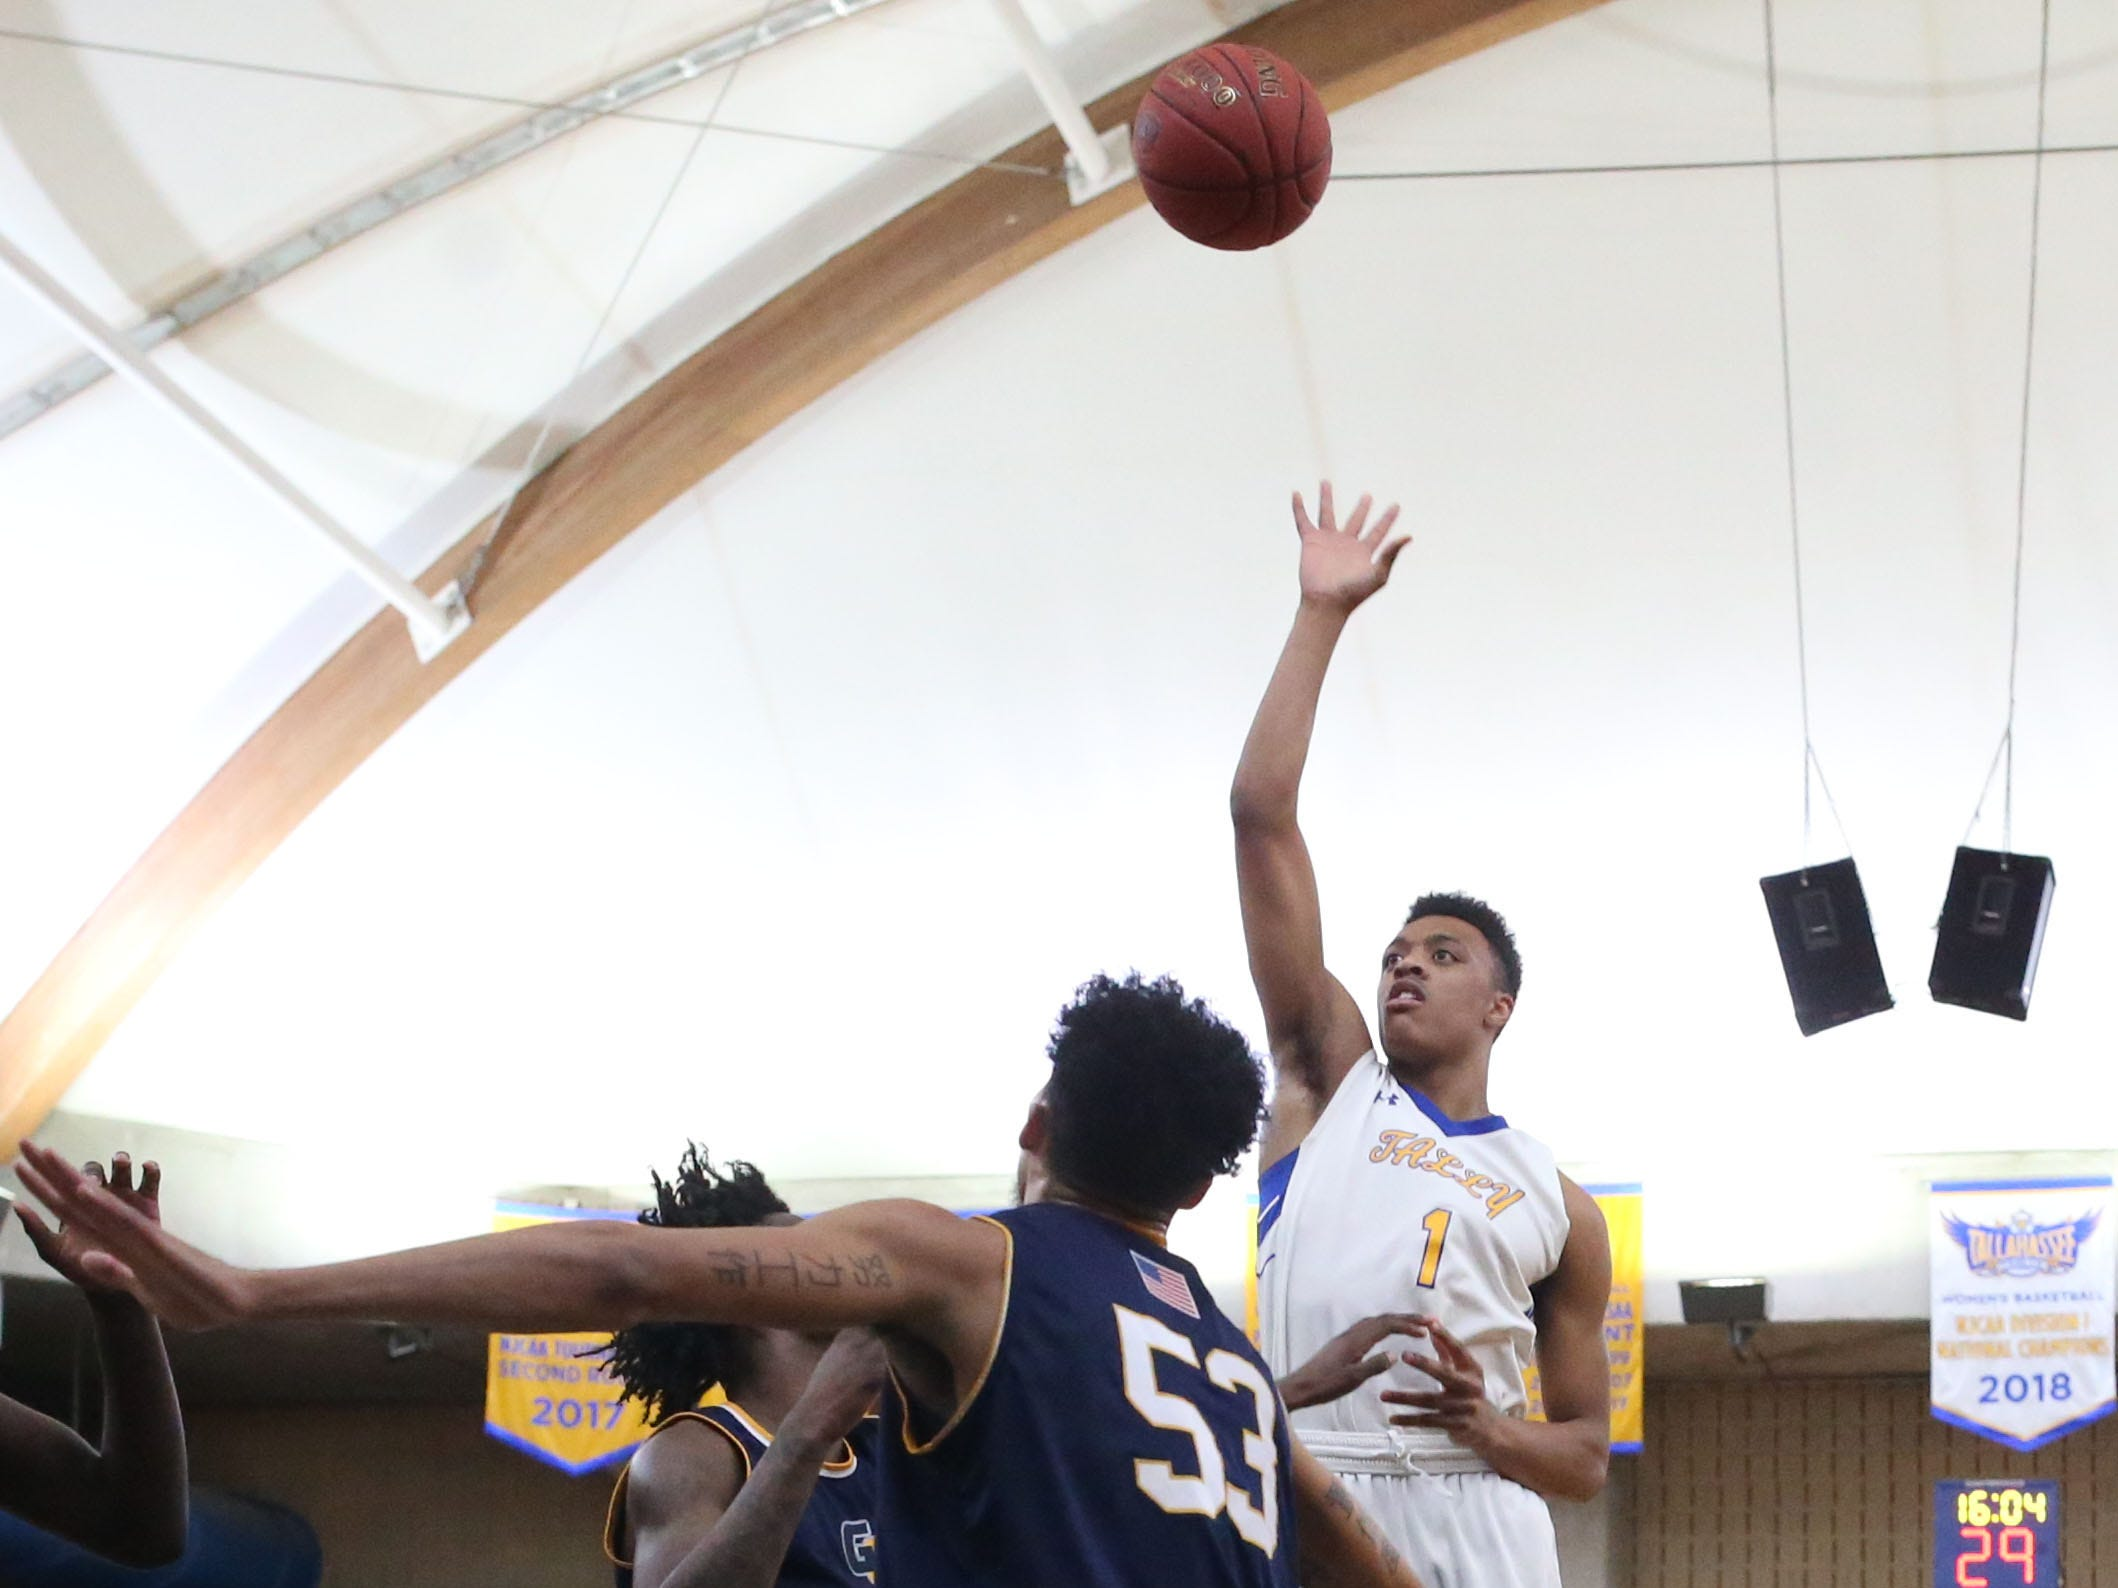 Tallahassee Community College Eagles guard Eric Boone (1) shoots for two from inside the paint. The Tallahassee Community College Eagles host the Gulf Coast State College Commodores in a conference match-up in the Eagledome, Saturday, Jan. 5, 2019.